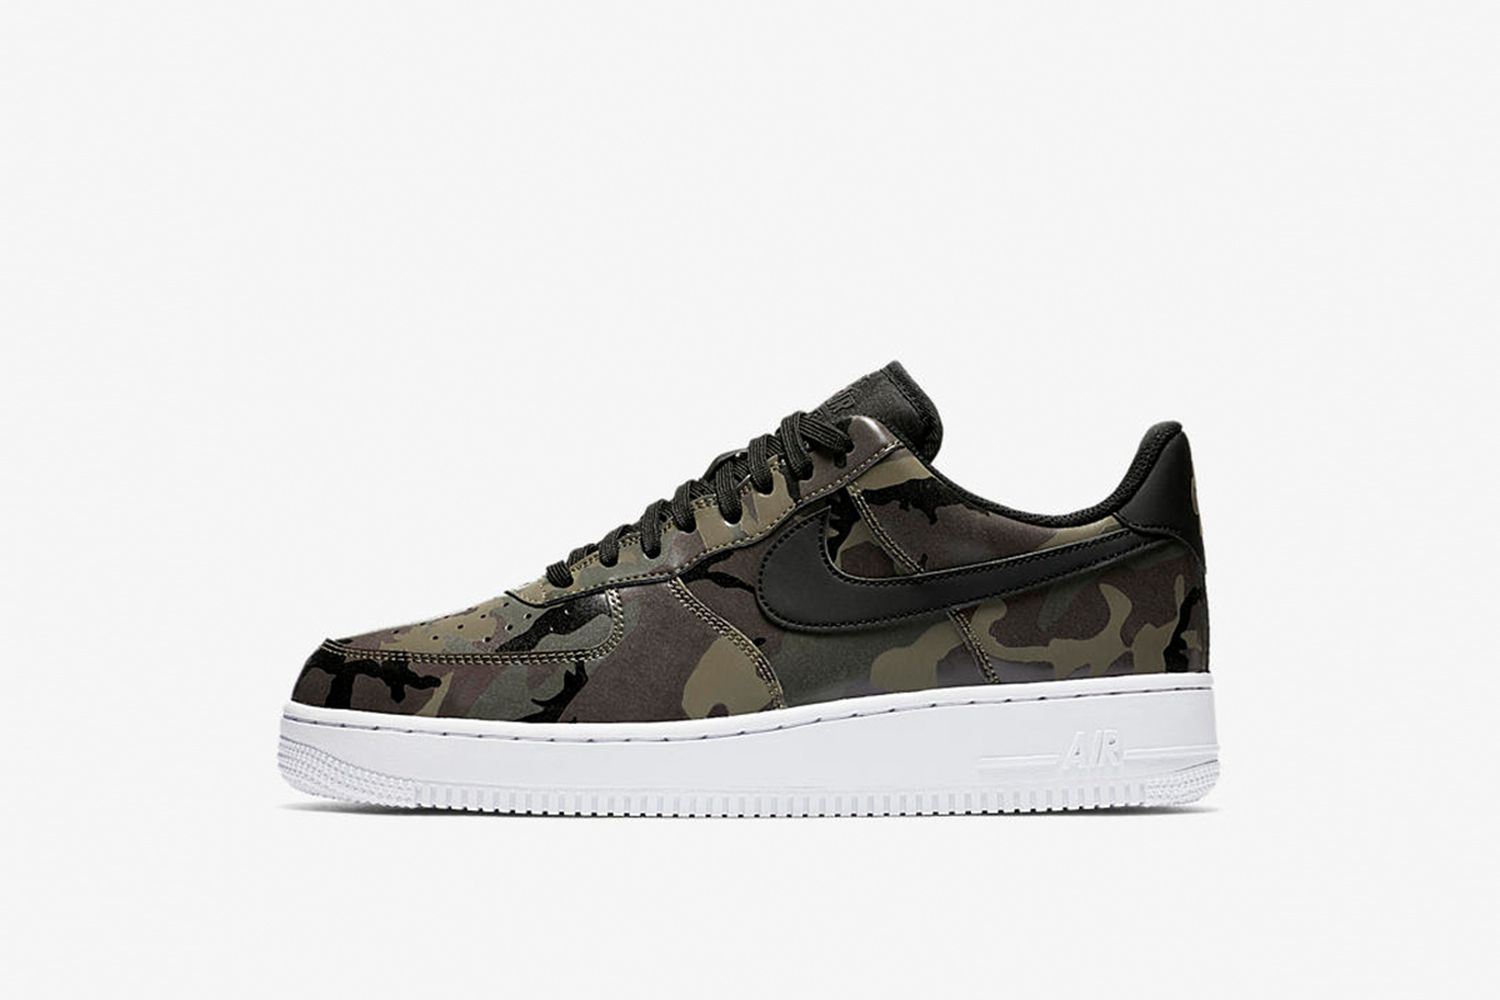 Air Force 1 'Reflective Camo' Pack